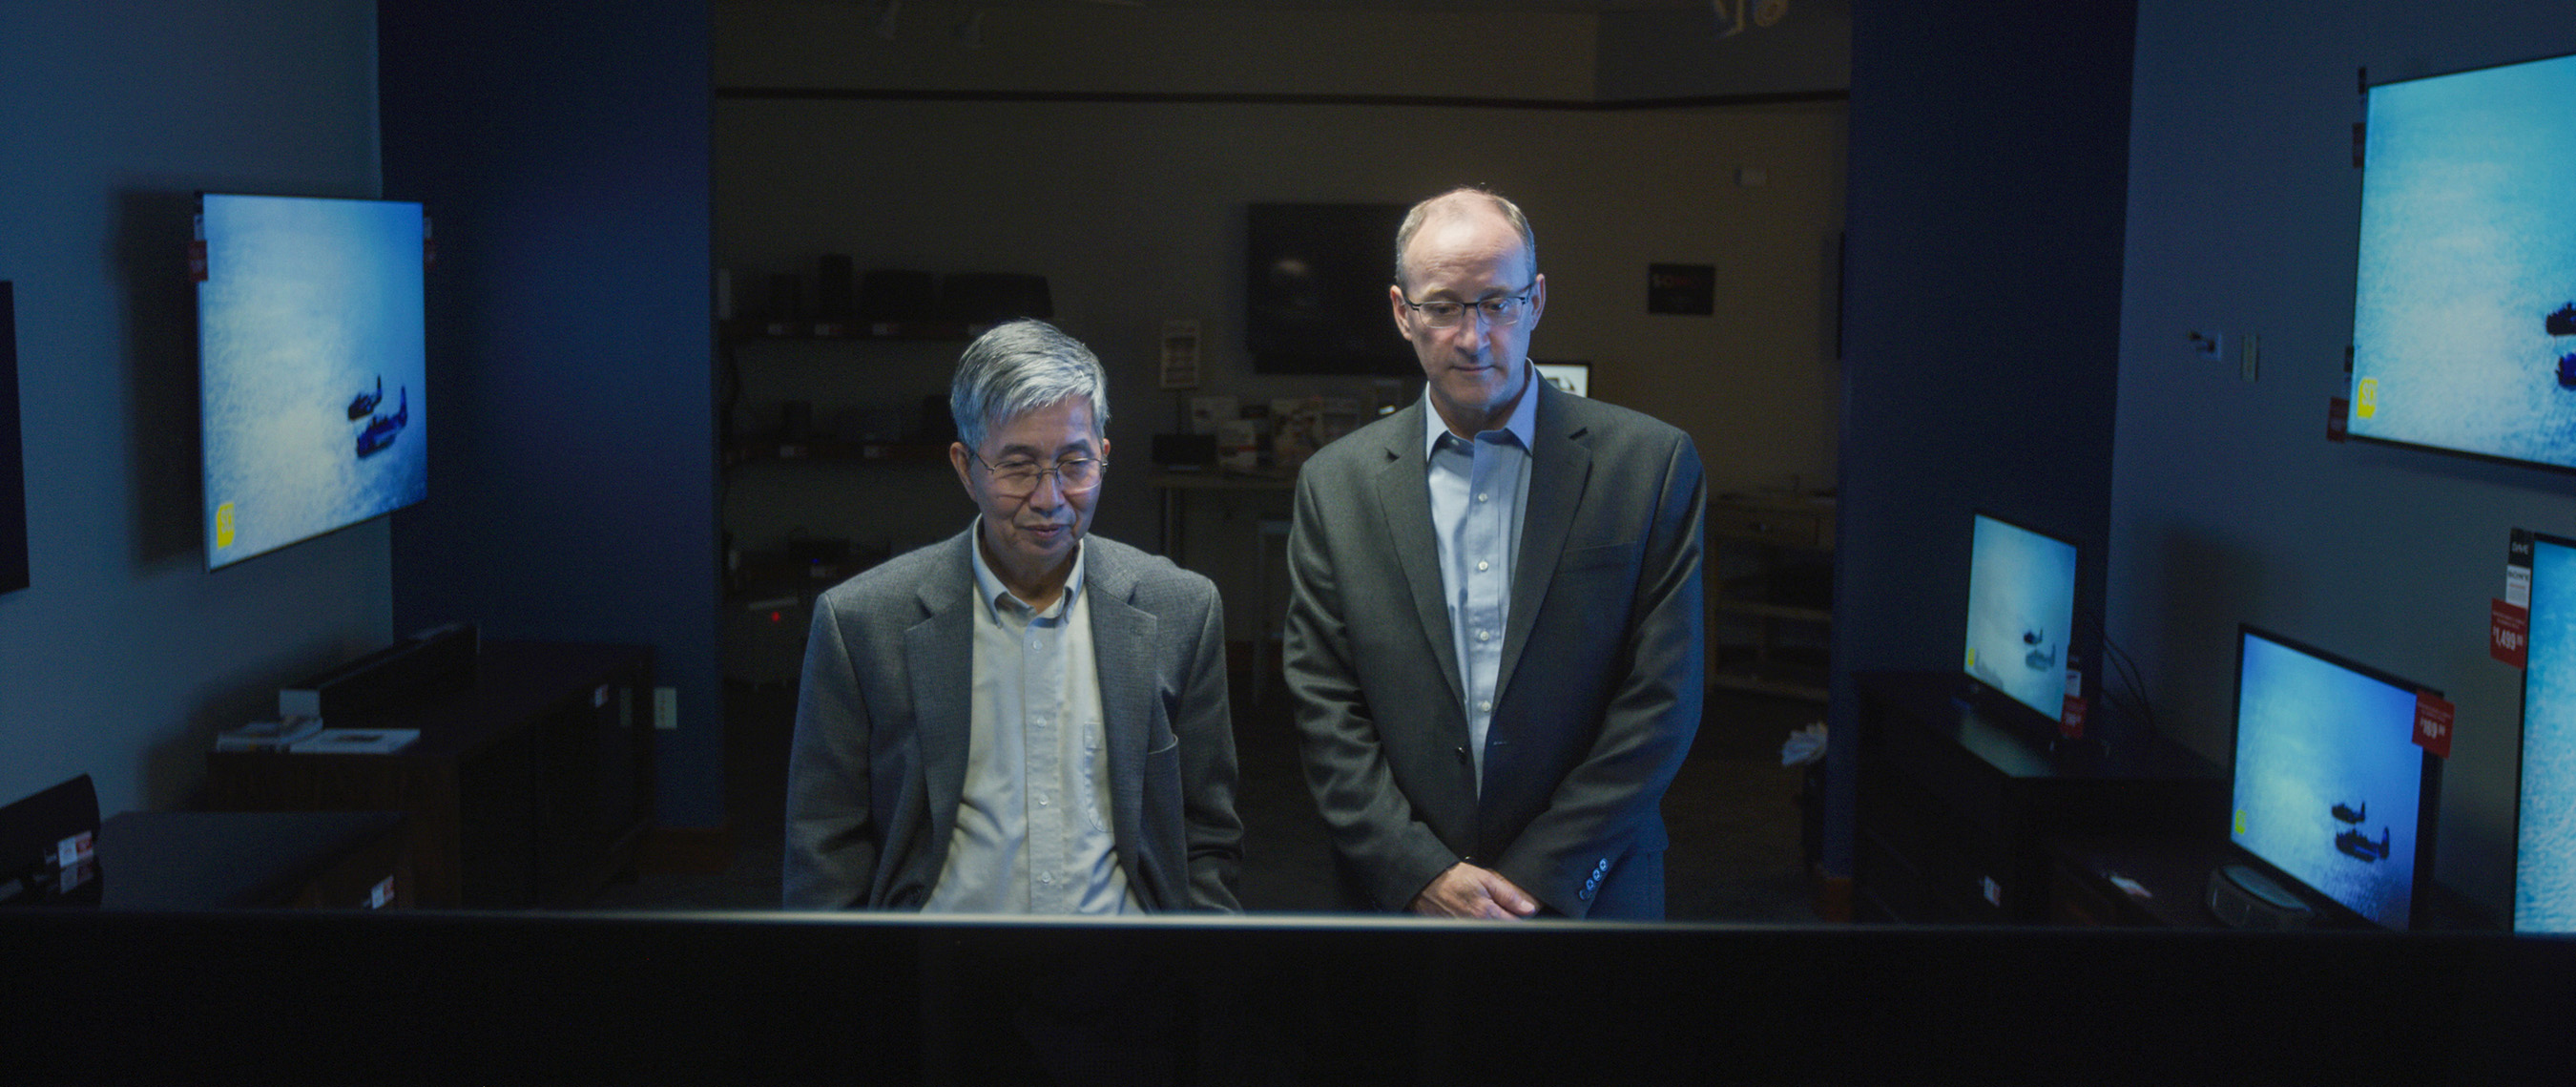 Two men stand in a darkened room surrounded by OLED monitors.